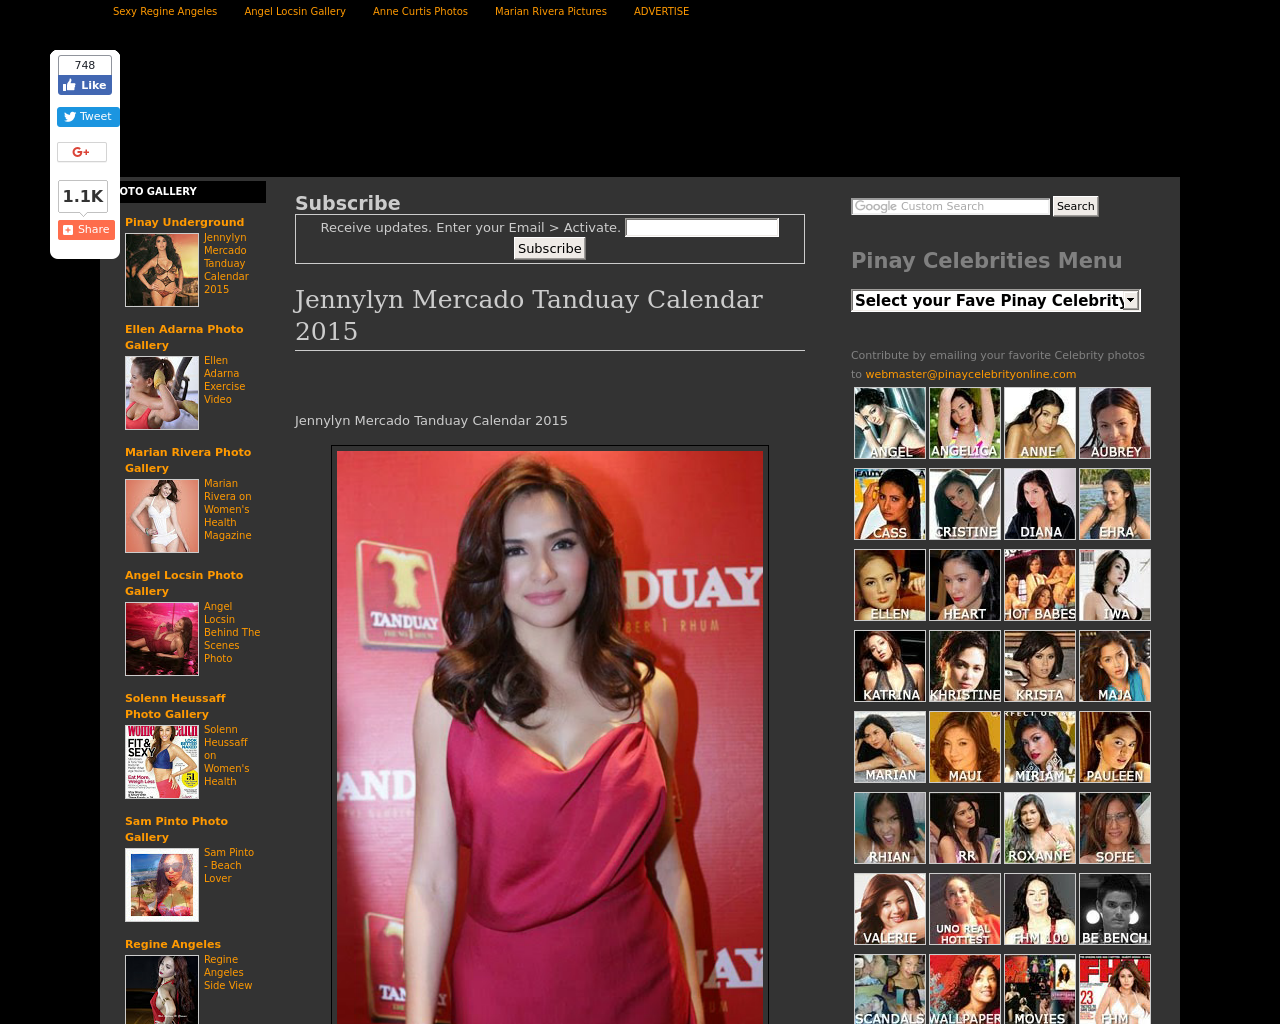 Pinay-Celebrity-Online-Advertising-Reviews-Pricing